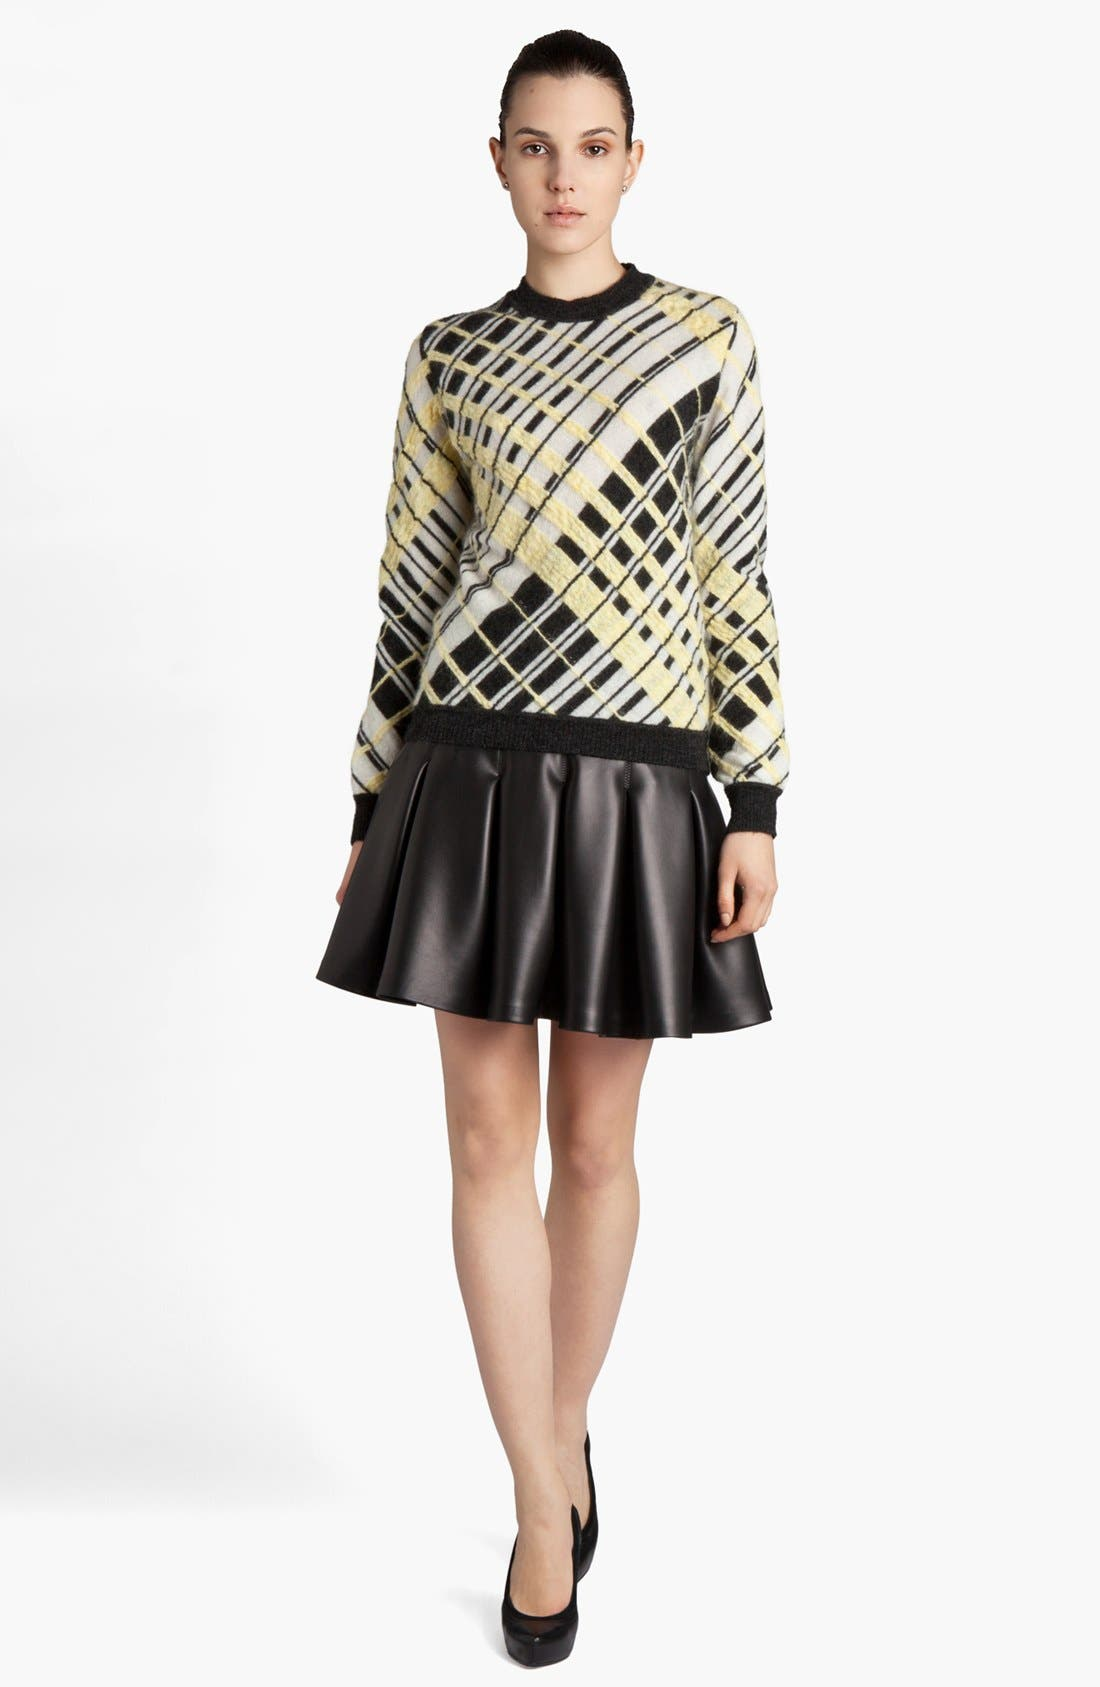 Alternate Image 1 Selected - MSGM Geometric Print Sweater